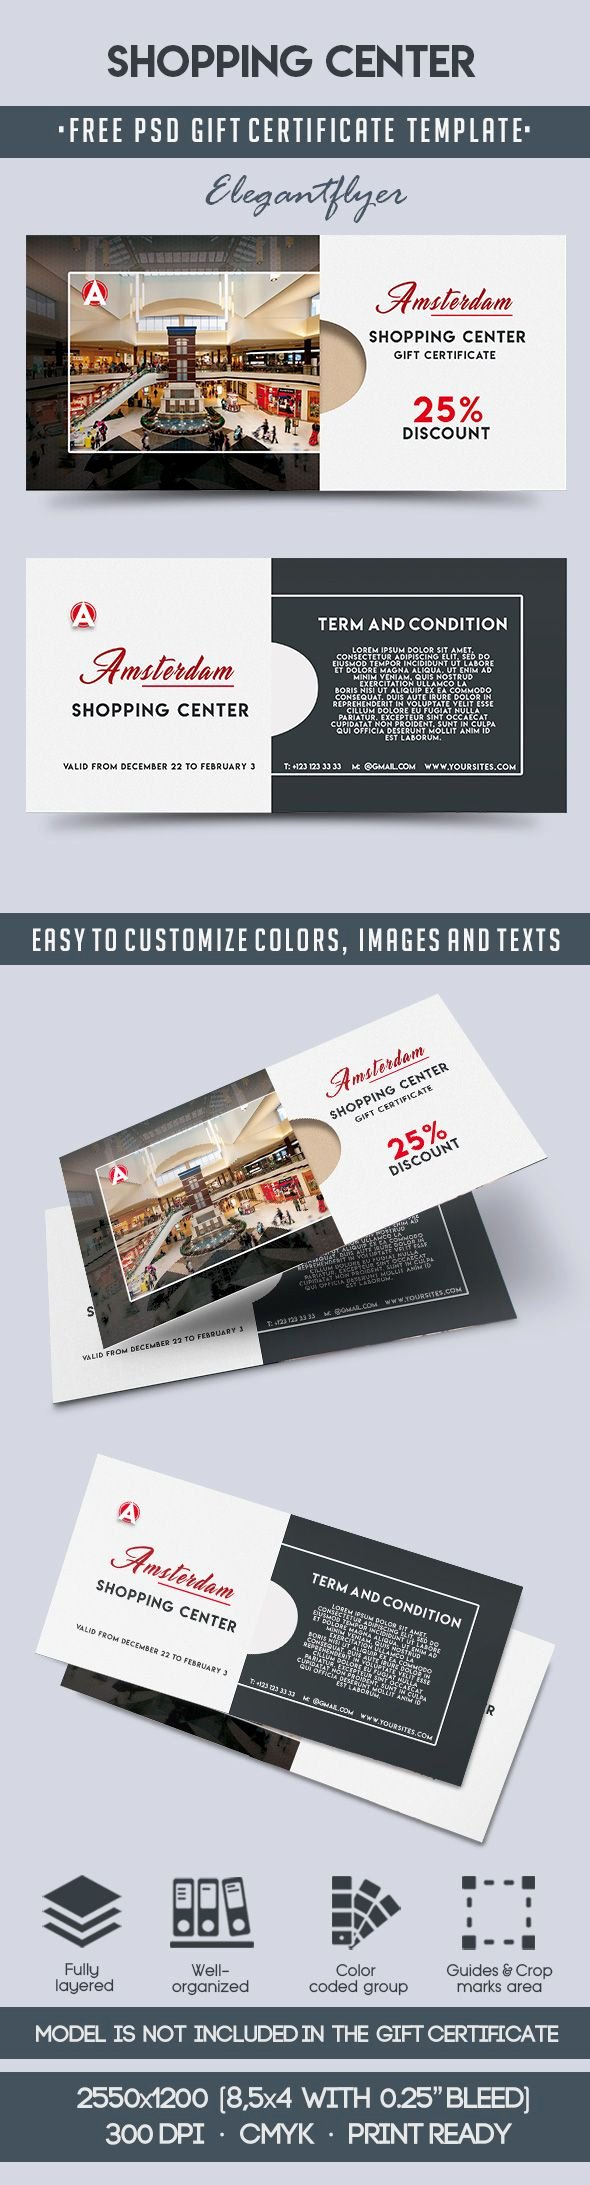 Gift Certificate Template Psd Elegant Shopping Center – Free Gift Certificate Psd Template – by